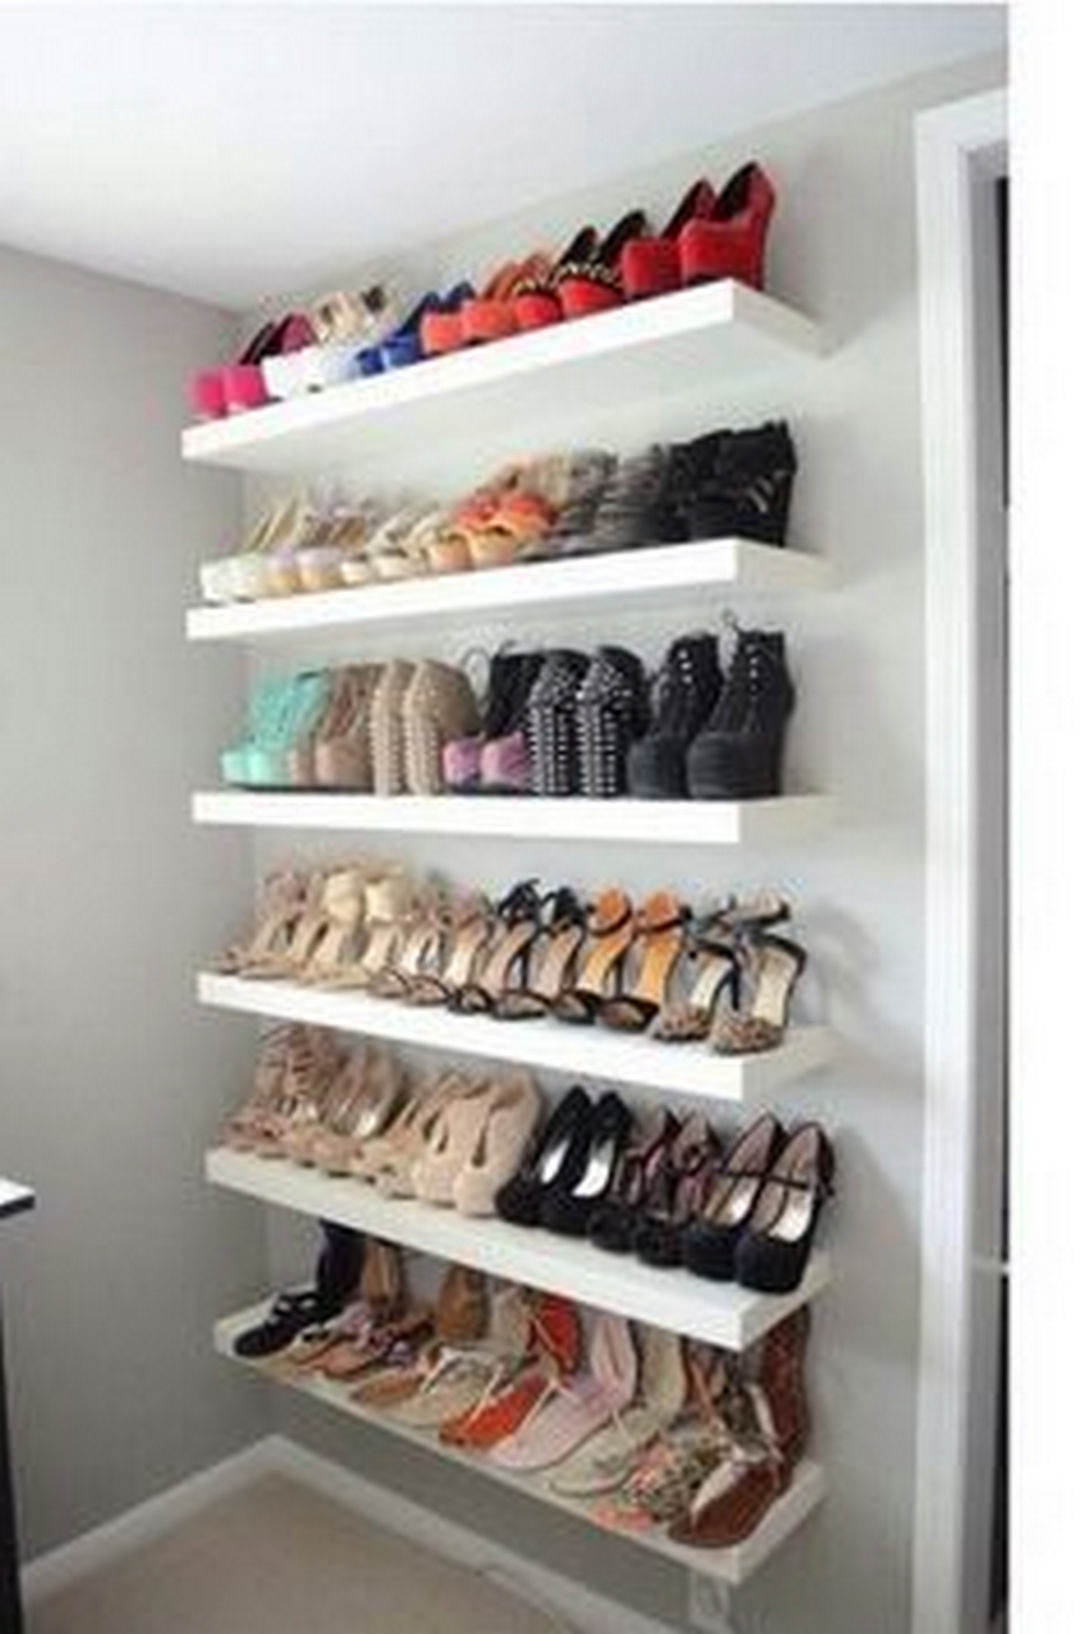 Practical Shoes Rack Design Ideas For Small Homes Organization